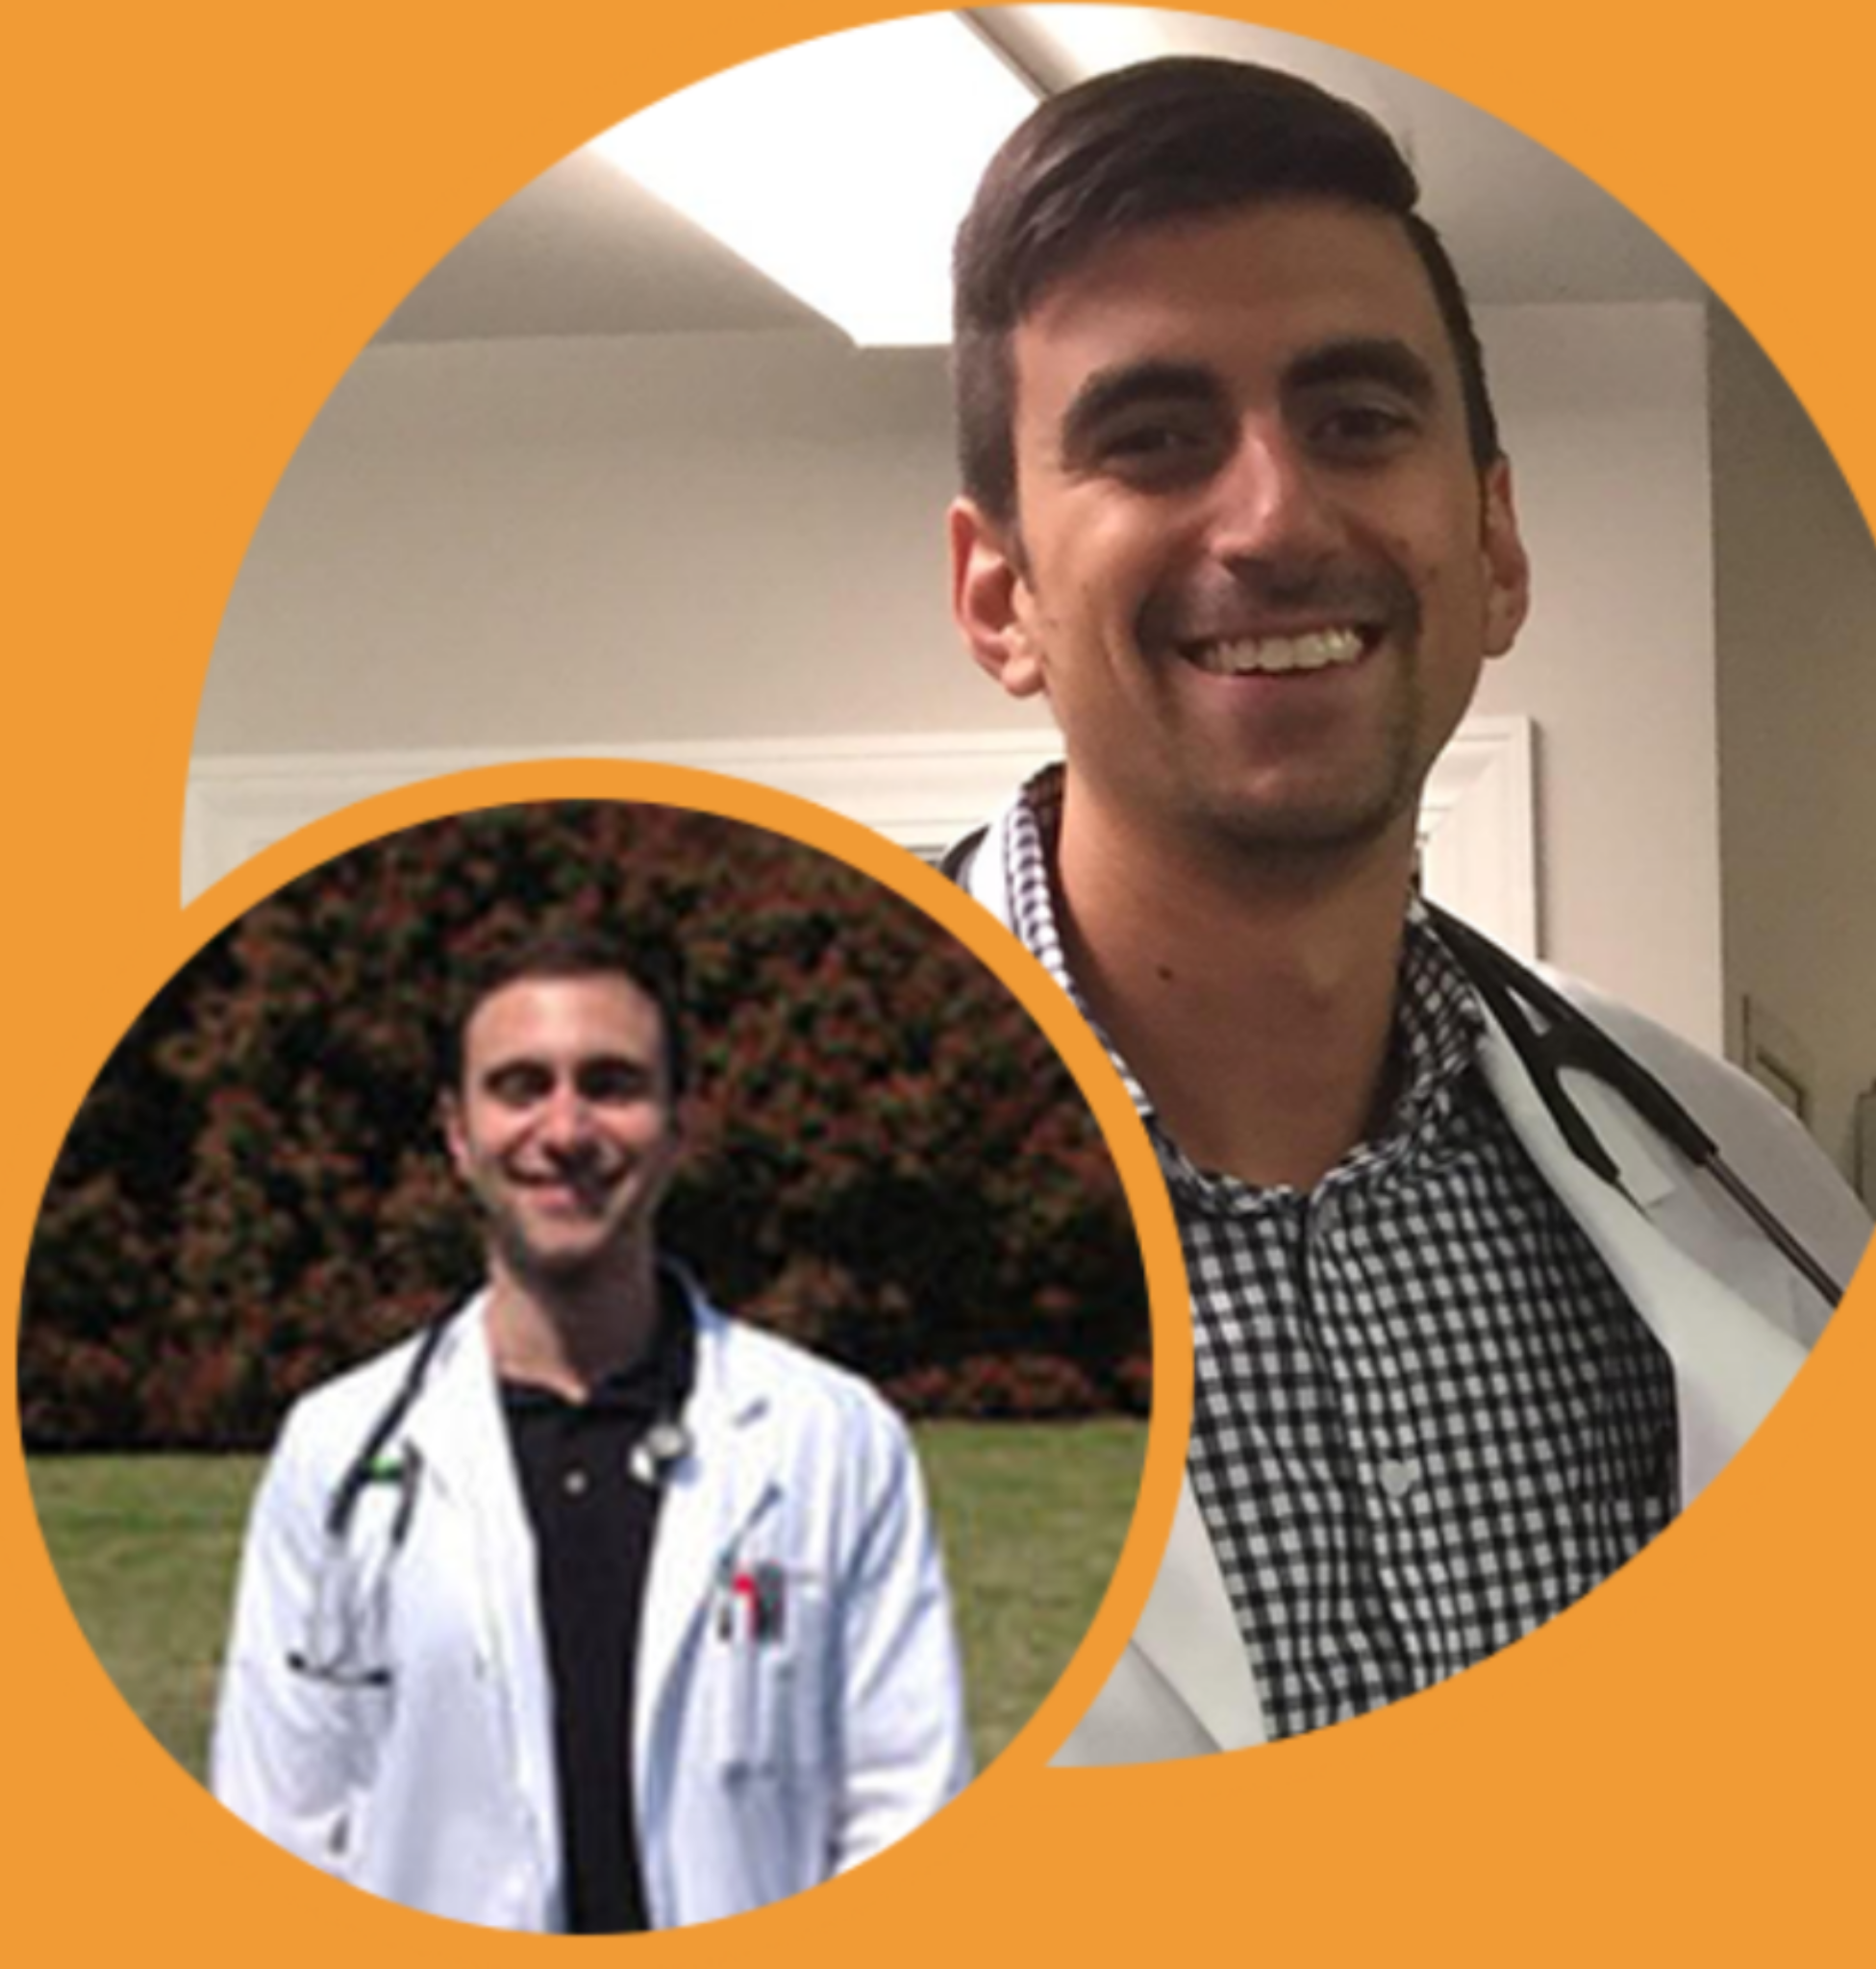 Dr. Christian and Dr. Shane Proietto